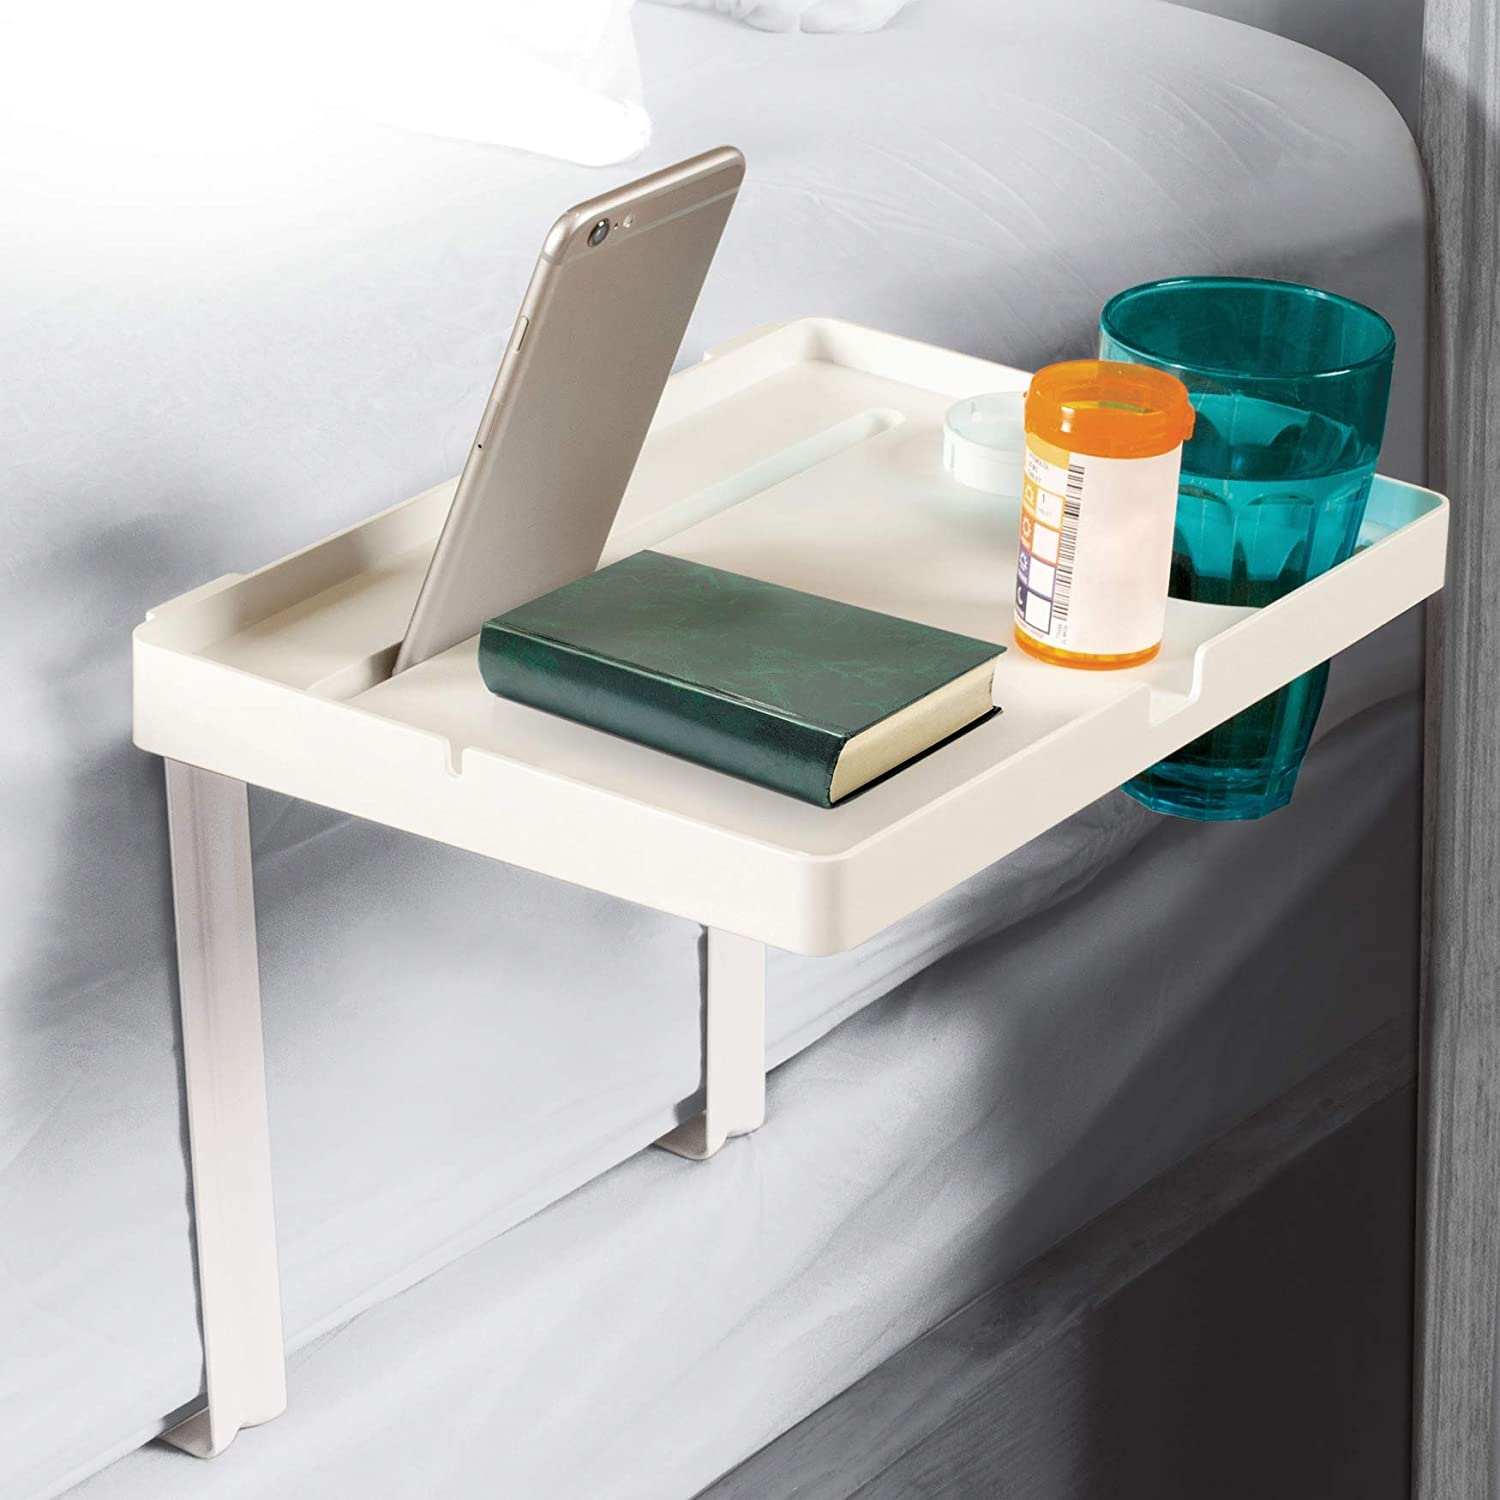 Bedside Assist Table & Organizational Shelf, Built-in Cup Holder, Cellphone Holder, Changeable Height